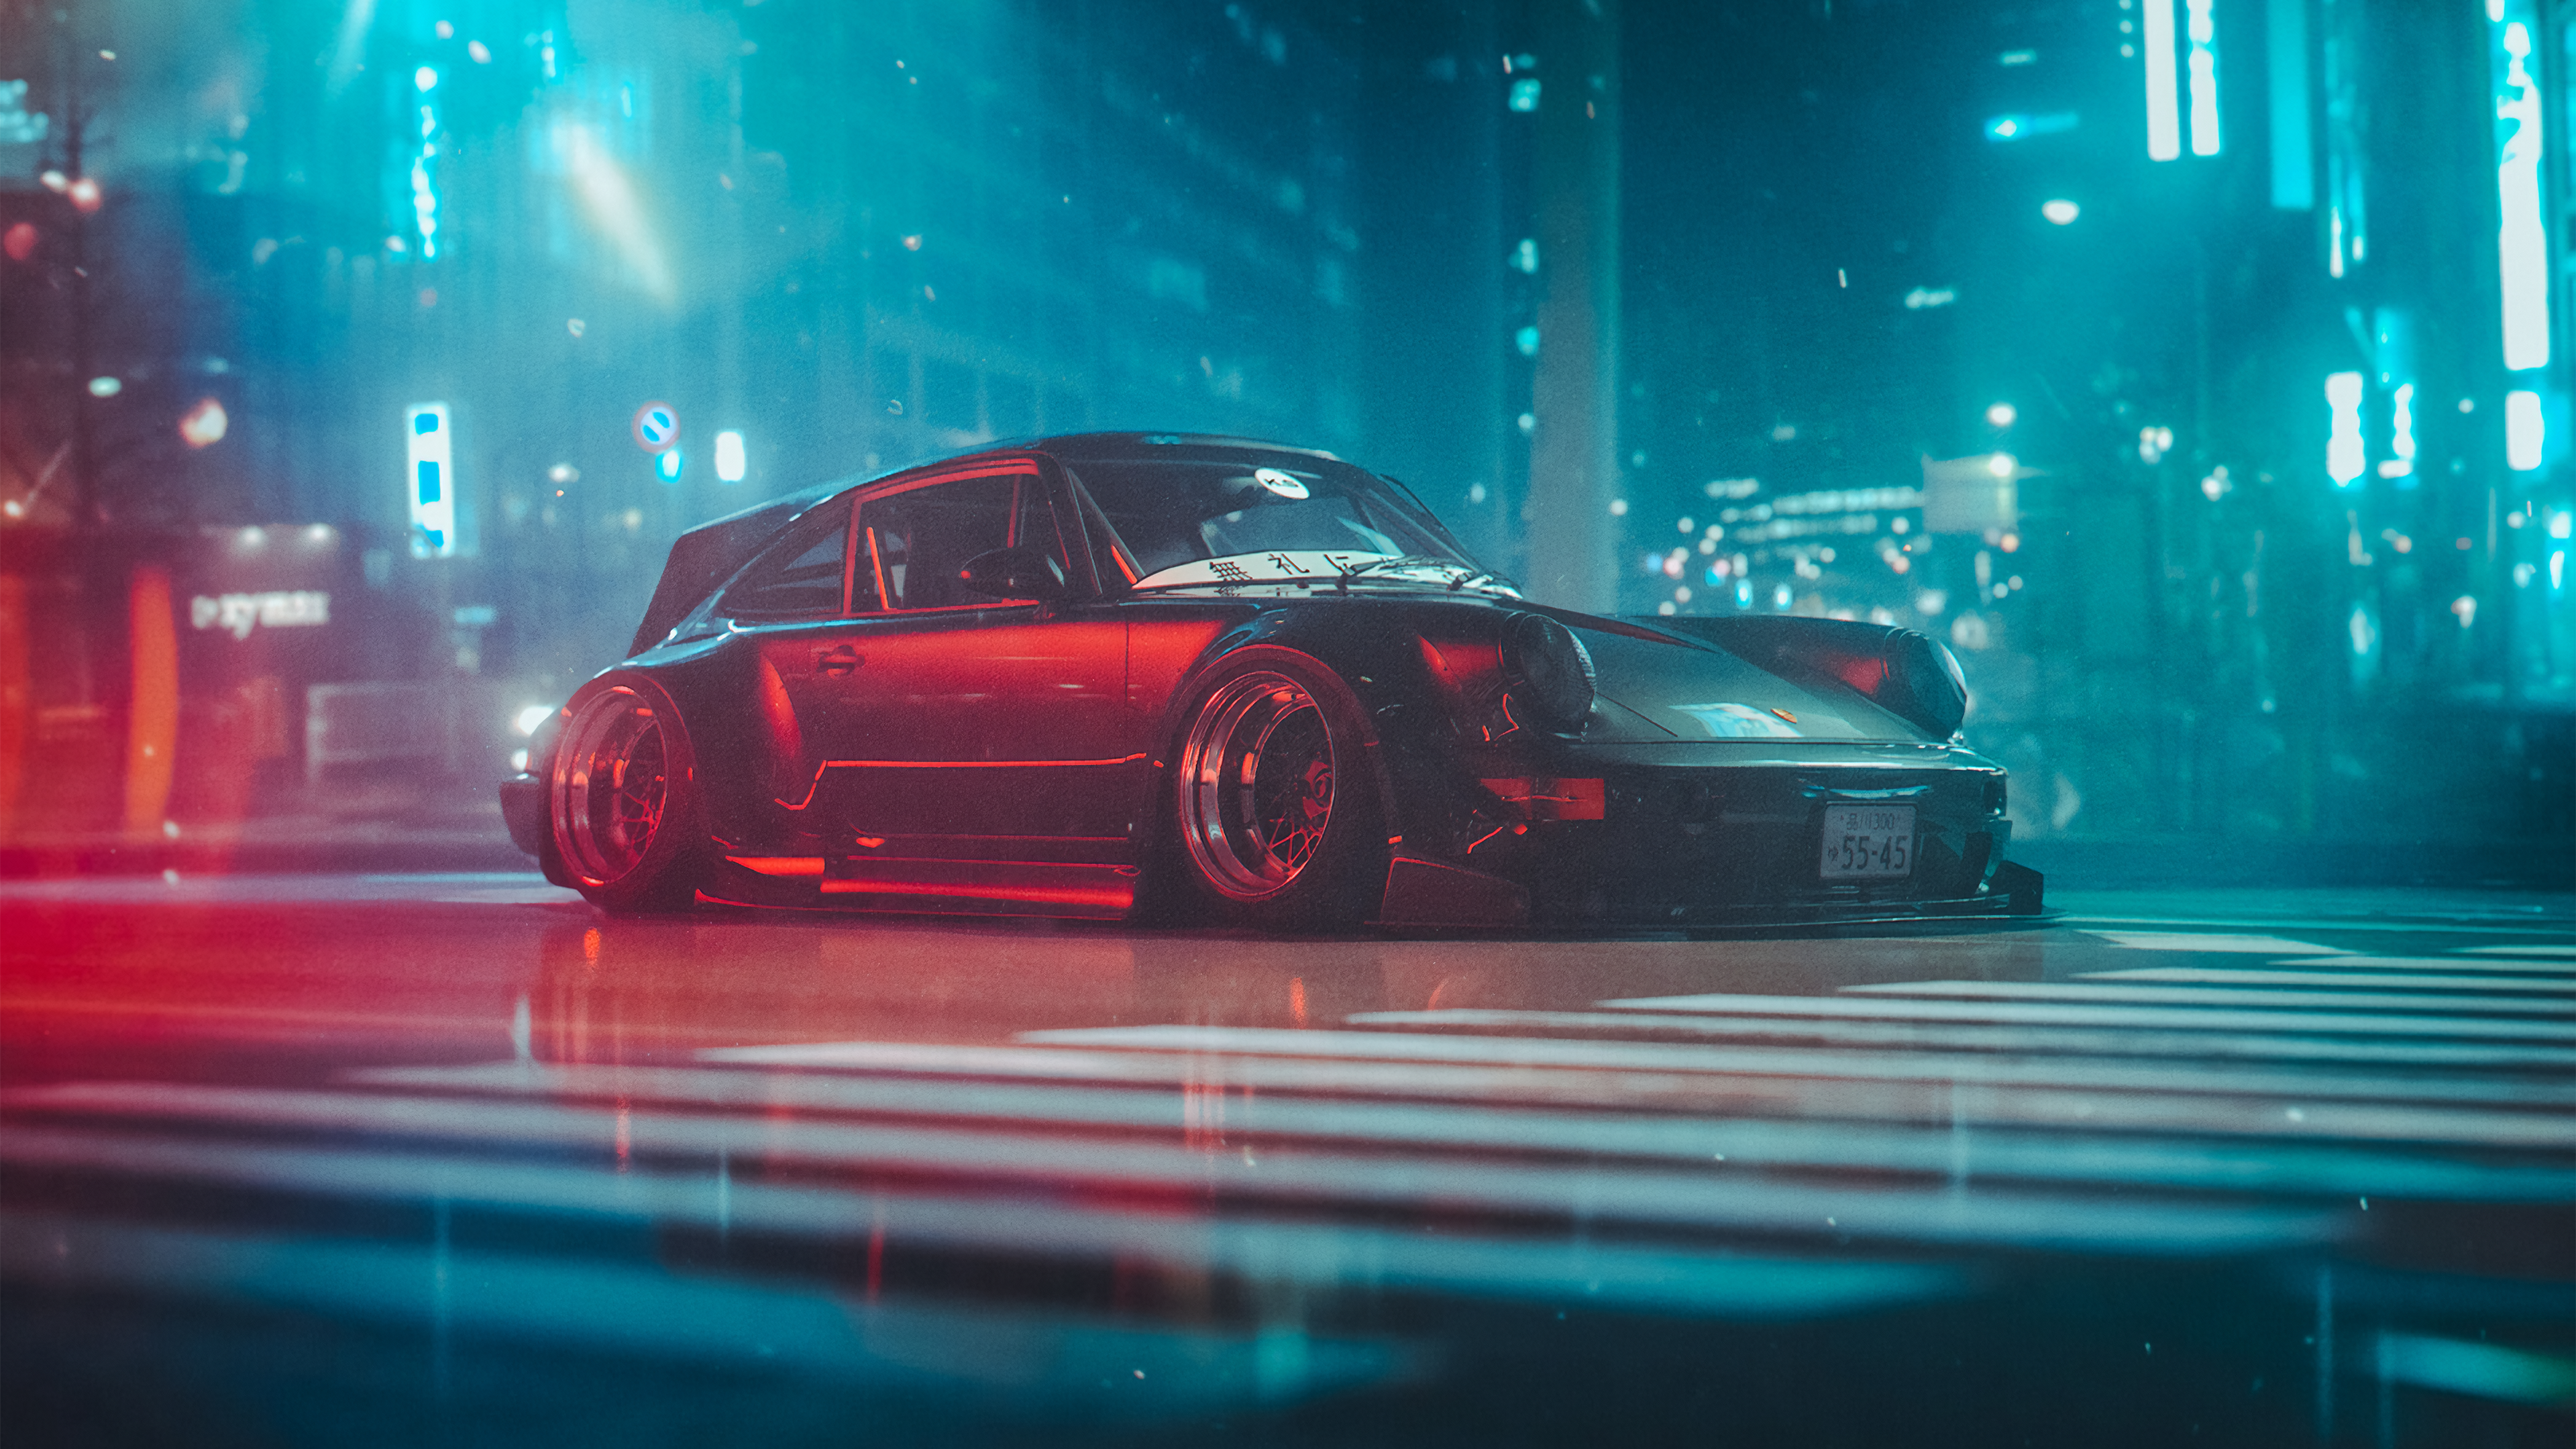 RWB 964 Wagon Khyzyl Saleem [3840x2160] Rwb Wagon Weird cars 3840x2160